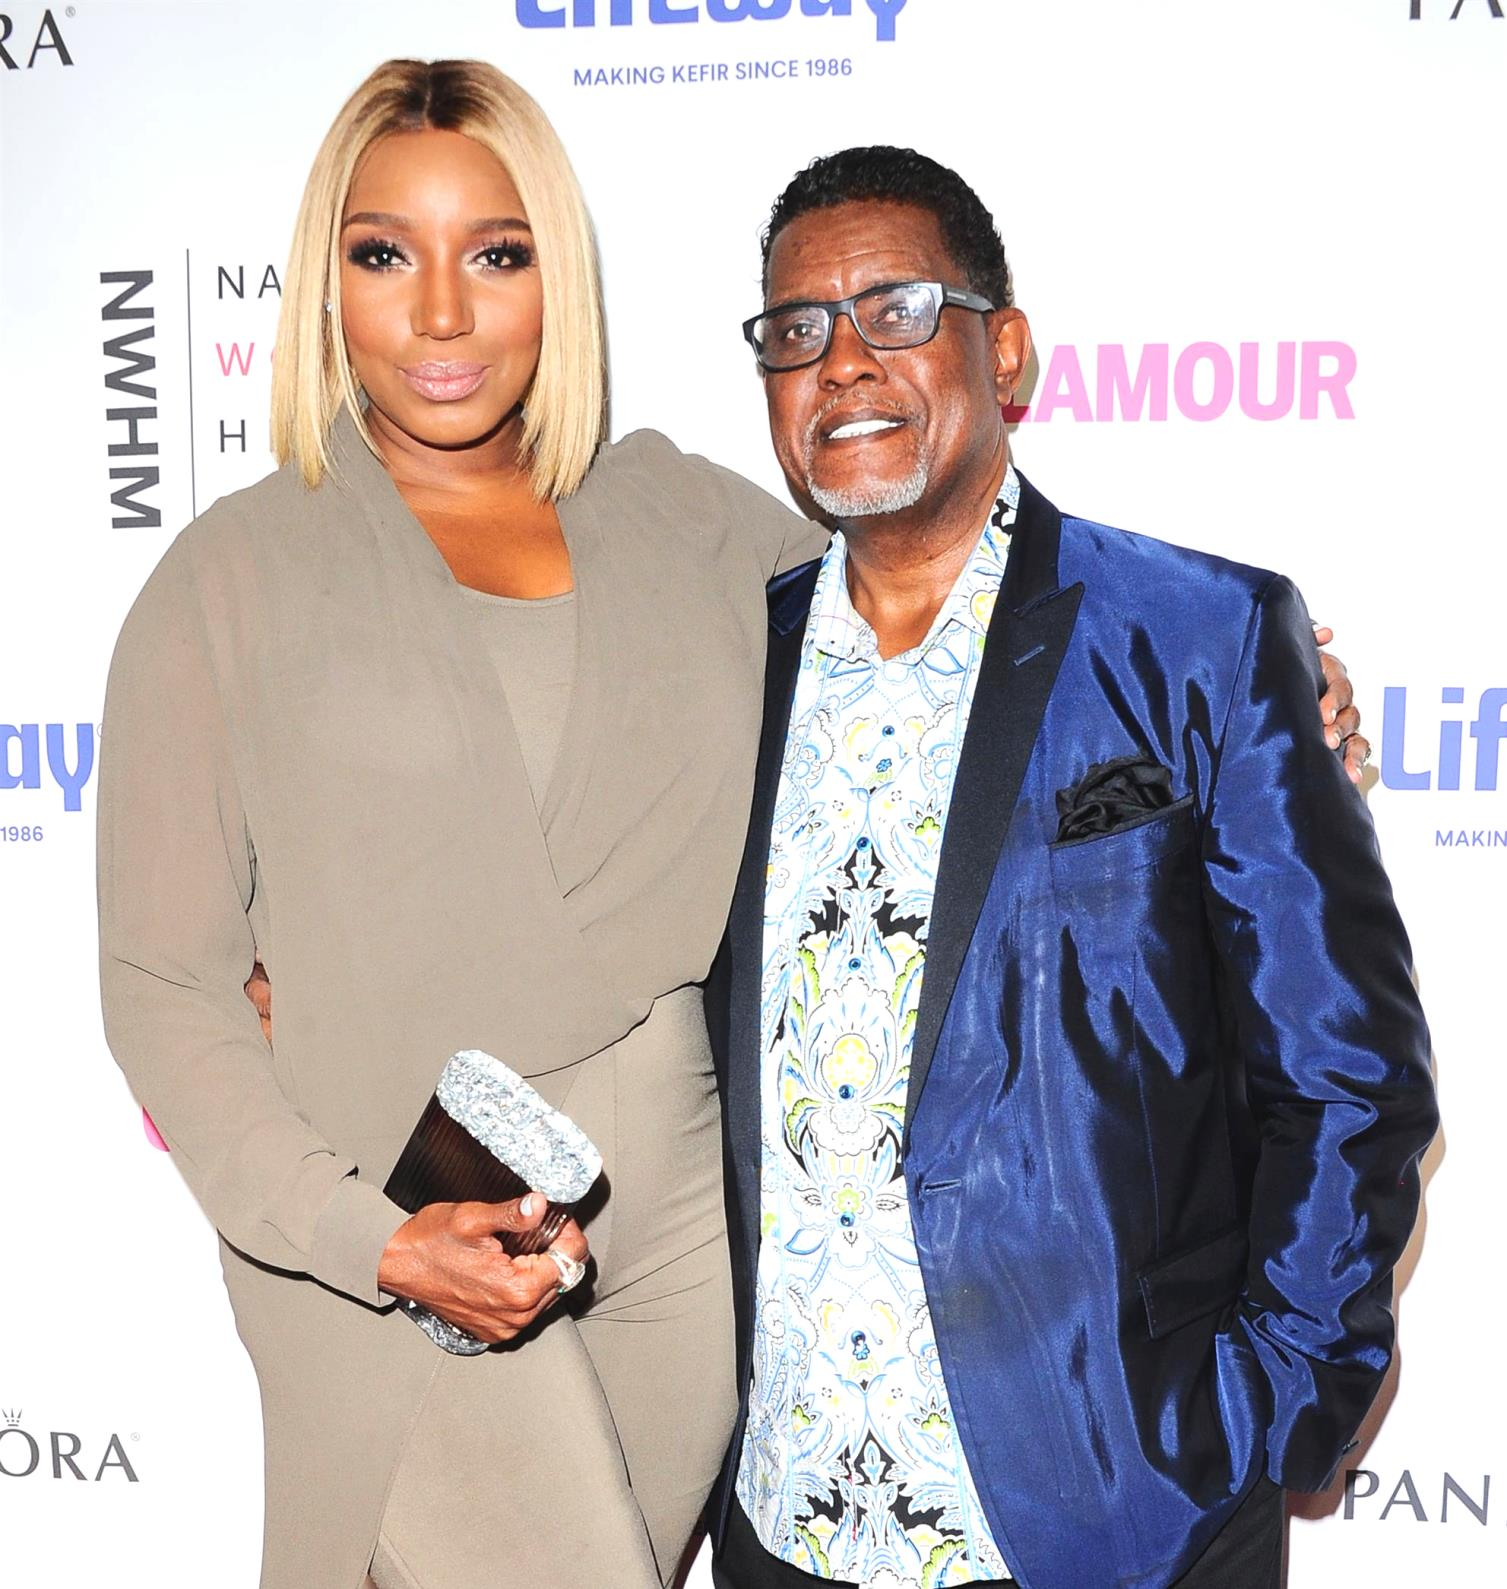 RHOA Nene Leakes Announces Gregg Has Cancer